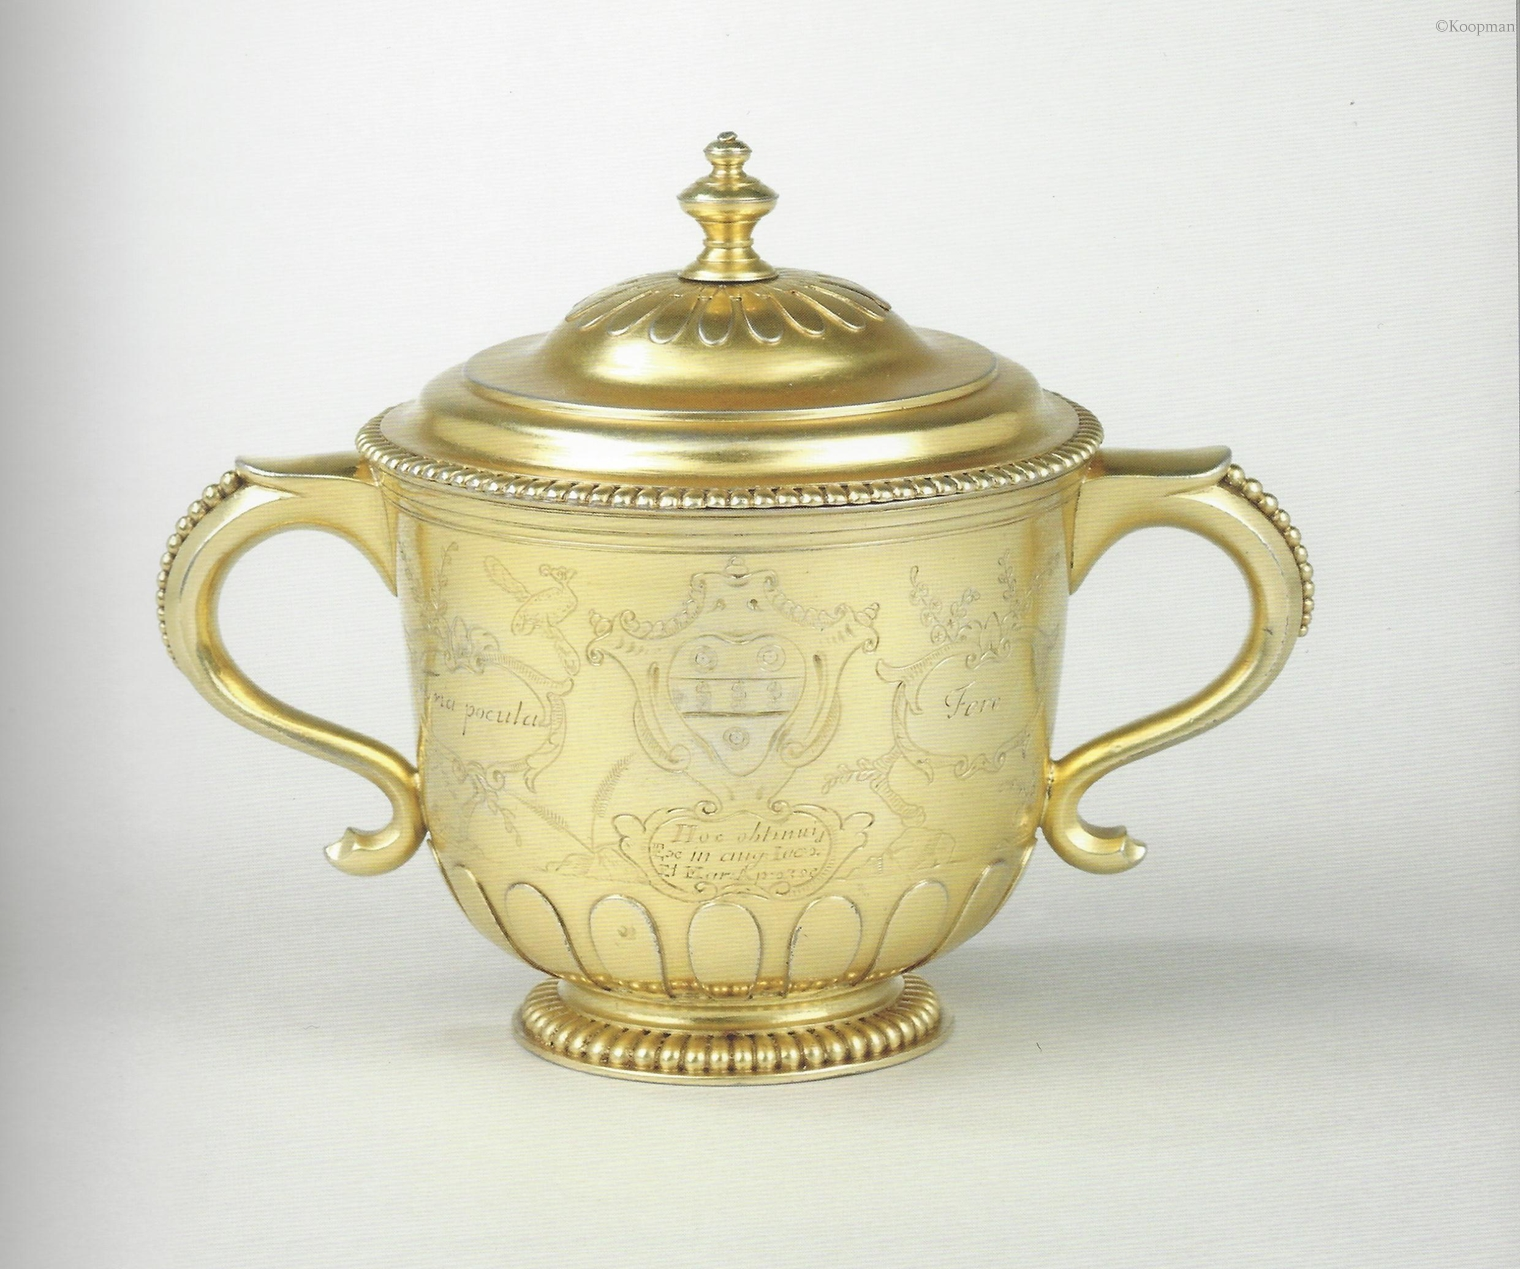 A Historic & Important James II Cup & Cover